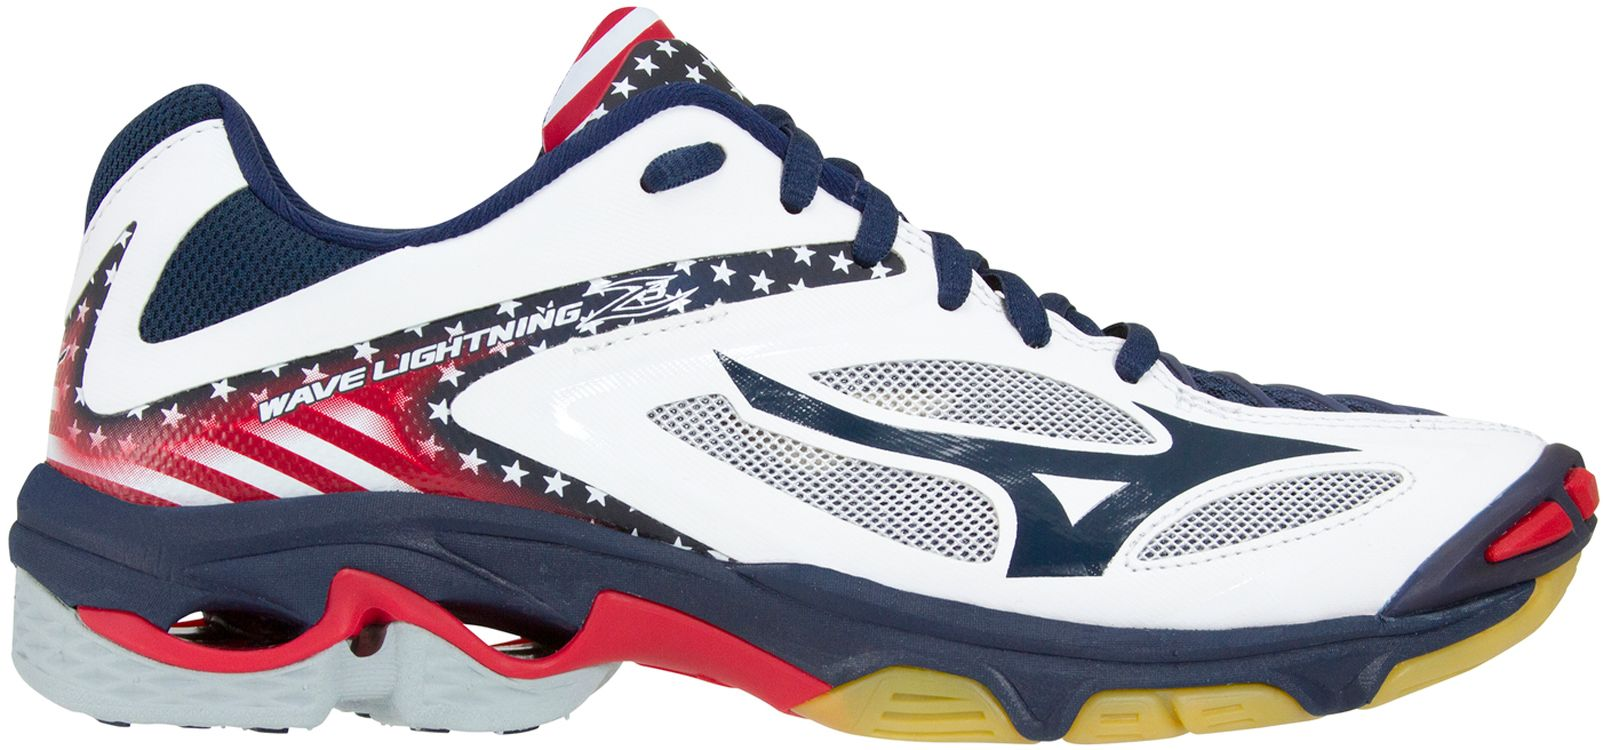 Mizuno Ladies Volleyball Shoes